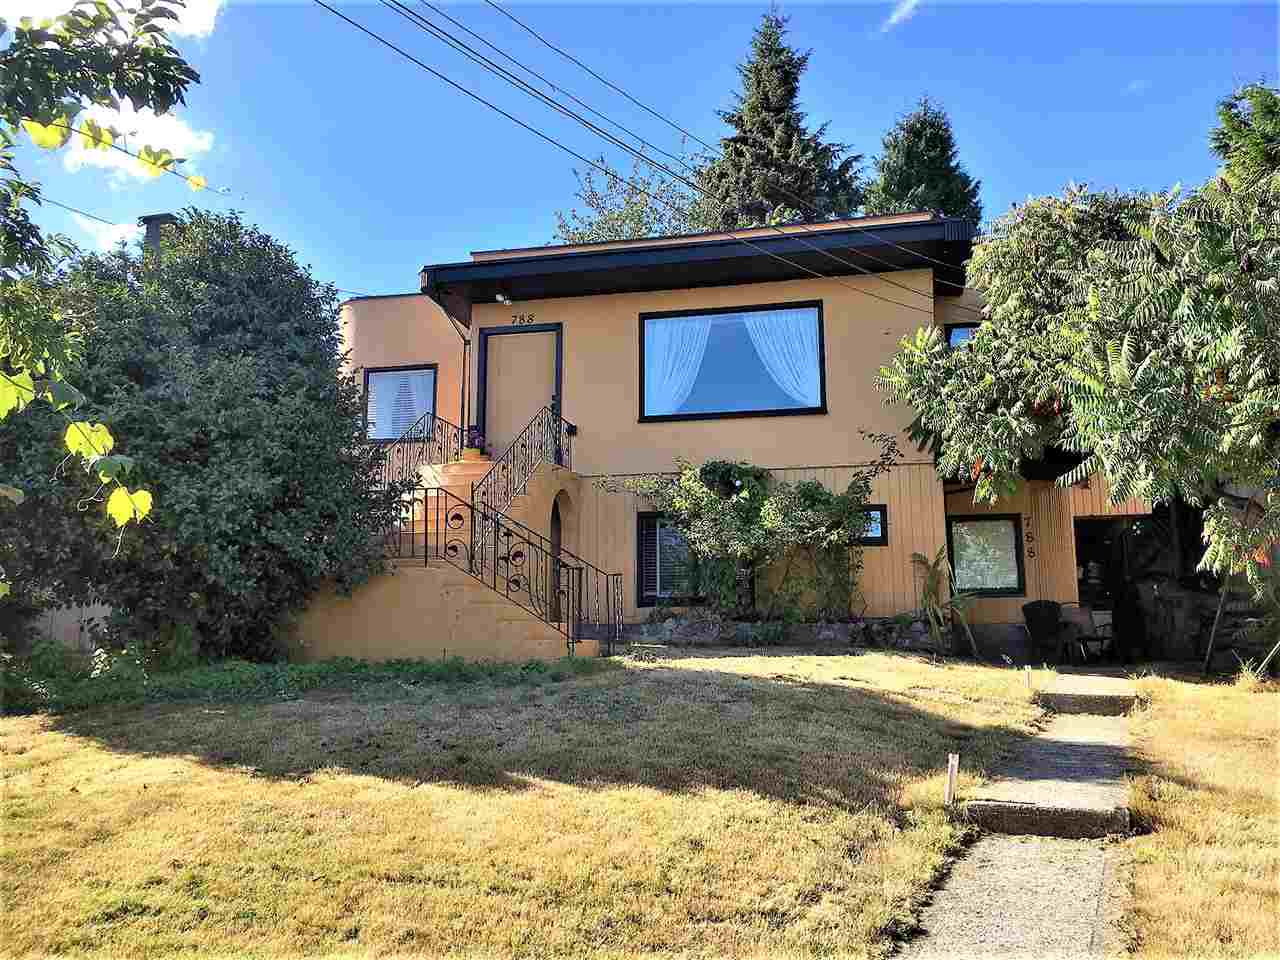 Main Photo: 788 CALVERHALL Street in North Vancouver: Calverhall House for sale : MLS®# R2199108